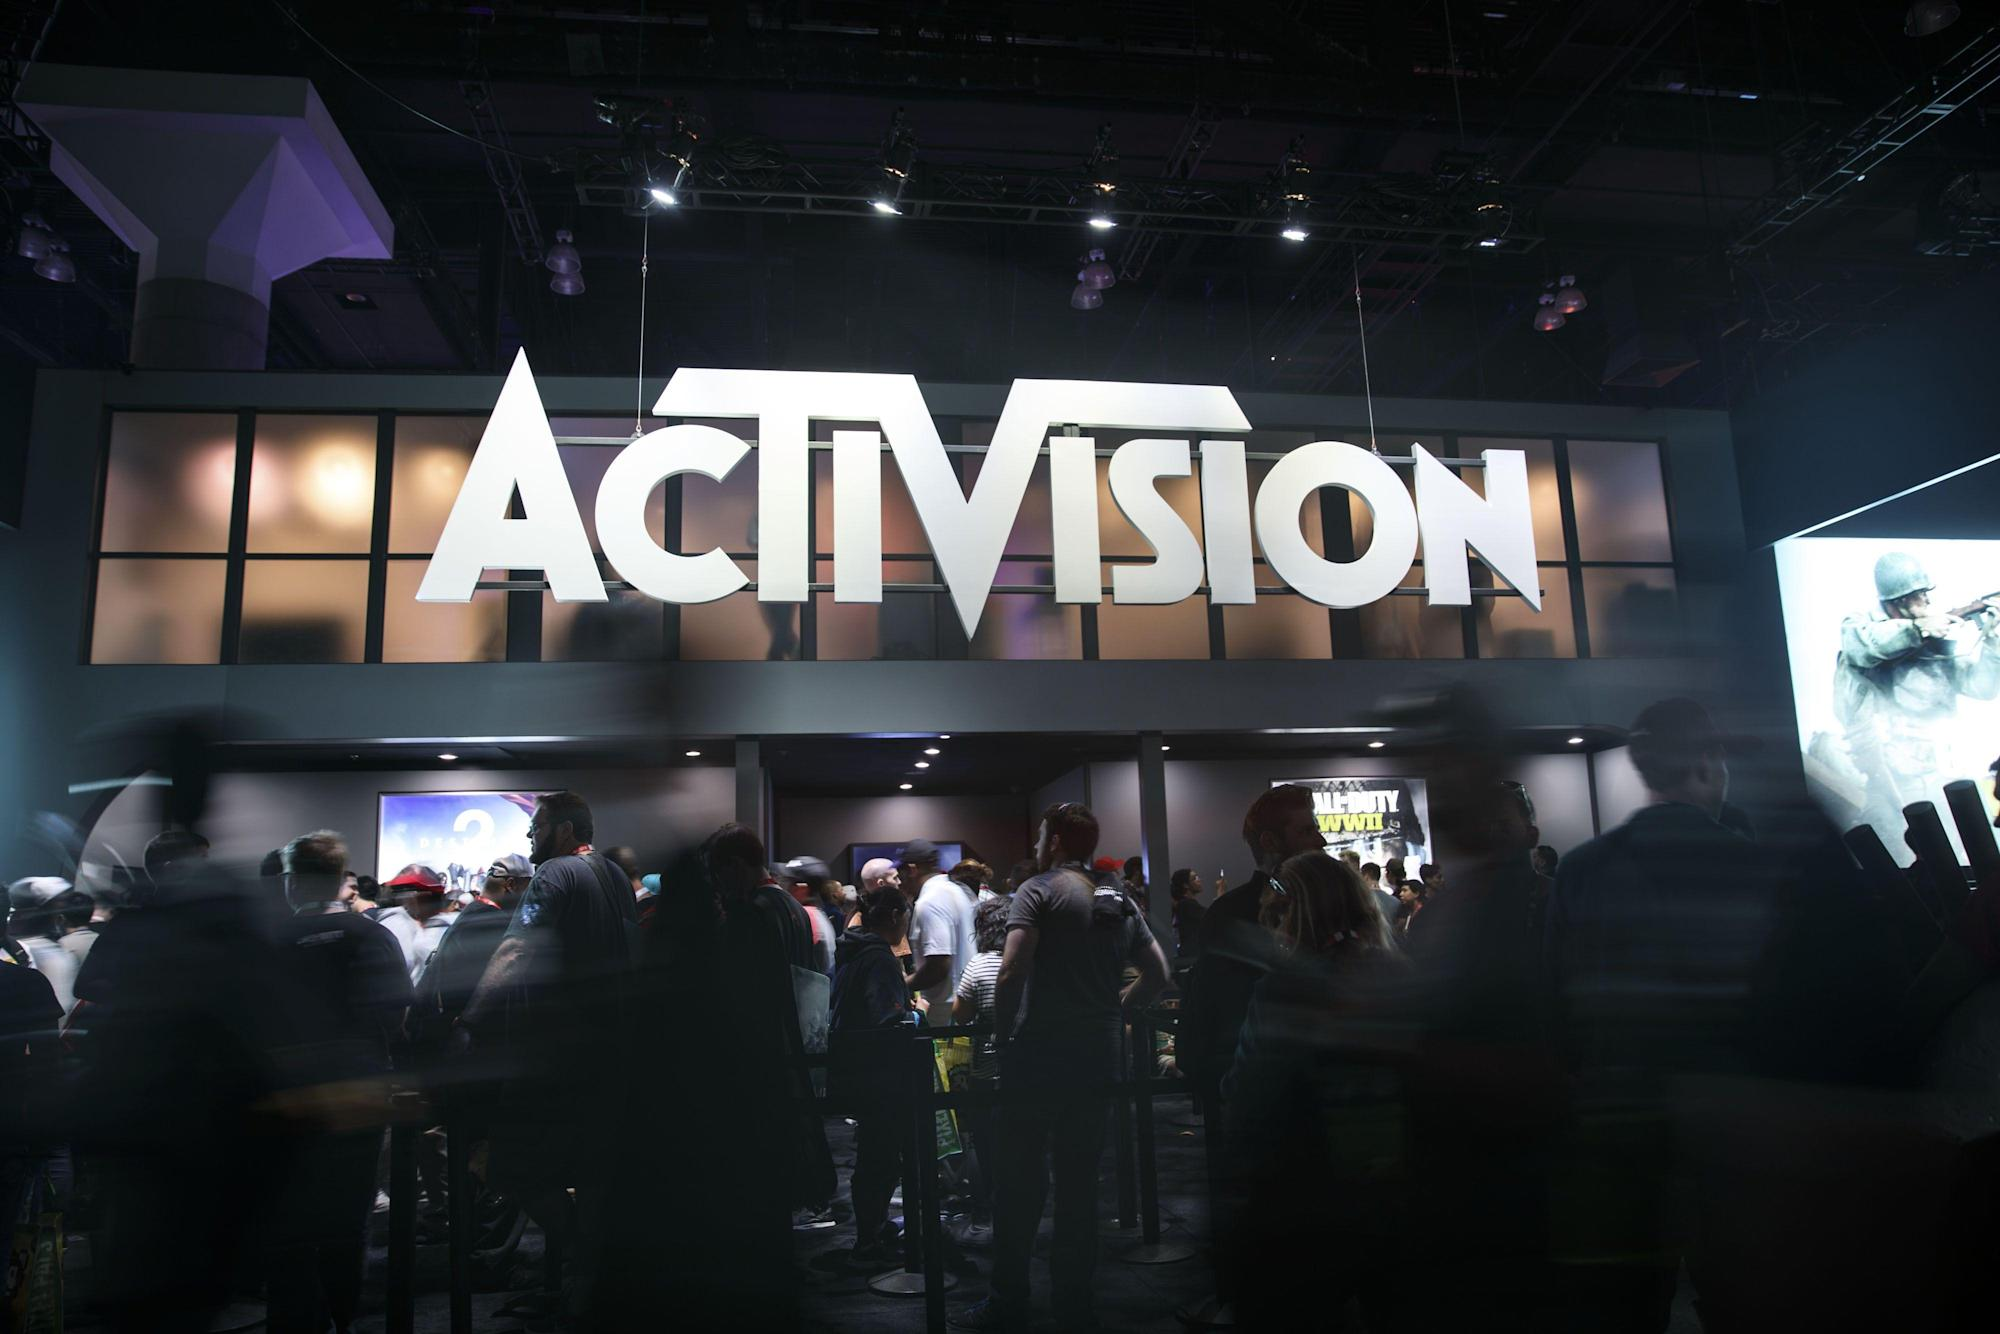 a9838c4bdd7e42c276a0ce1f886d8621 - Blizzard Absorbs Activision Studio After Dismantling Classic Games Team